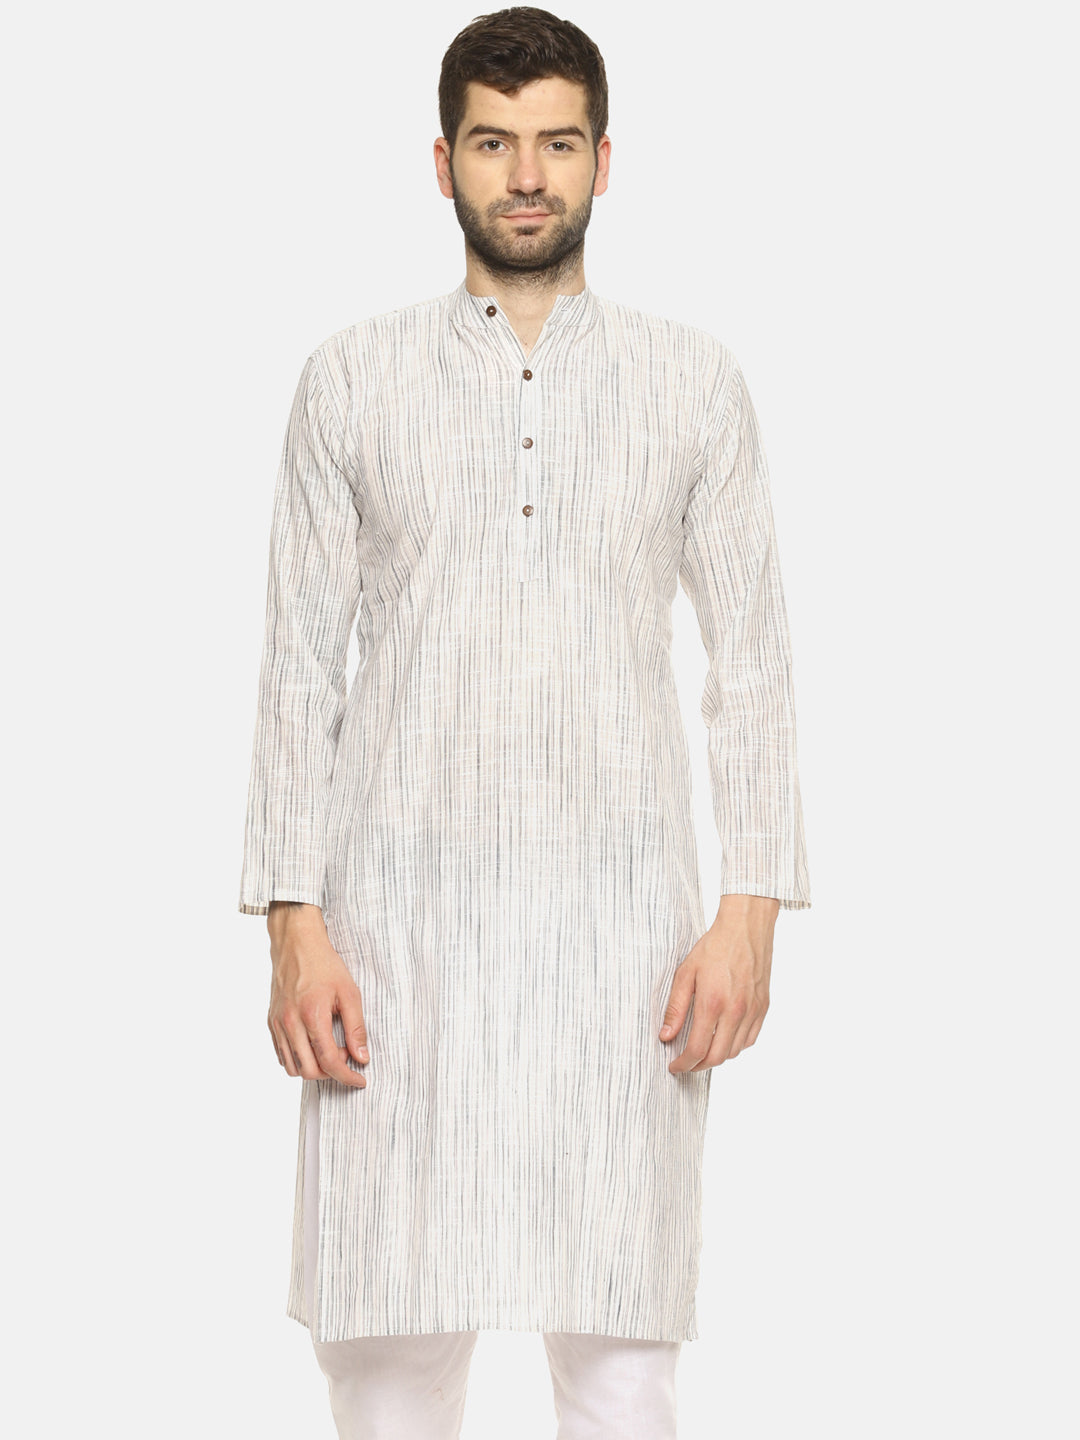 PAROKSH Men white line detail cotton Straight Kurta